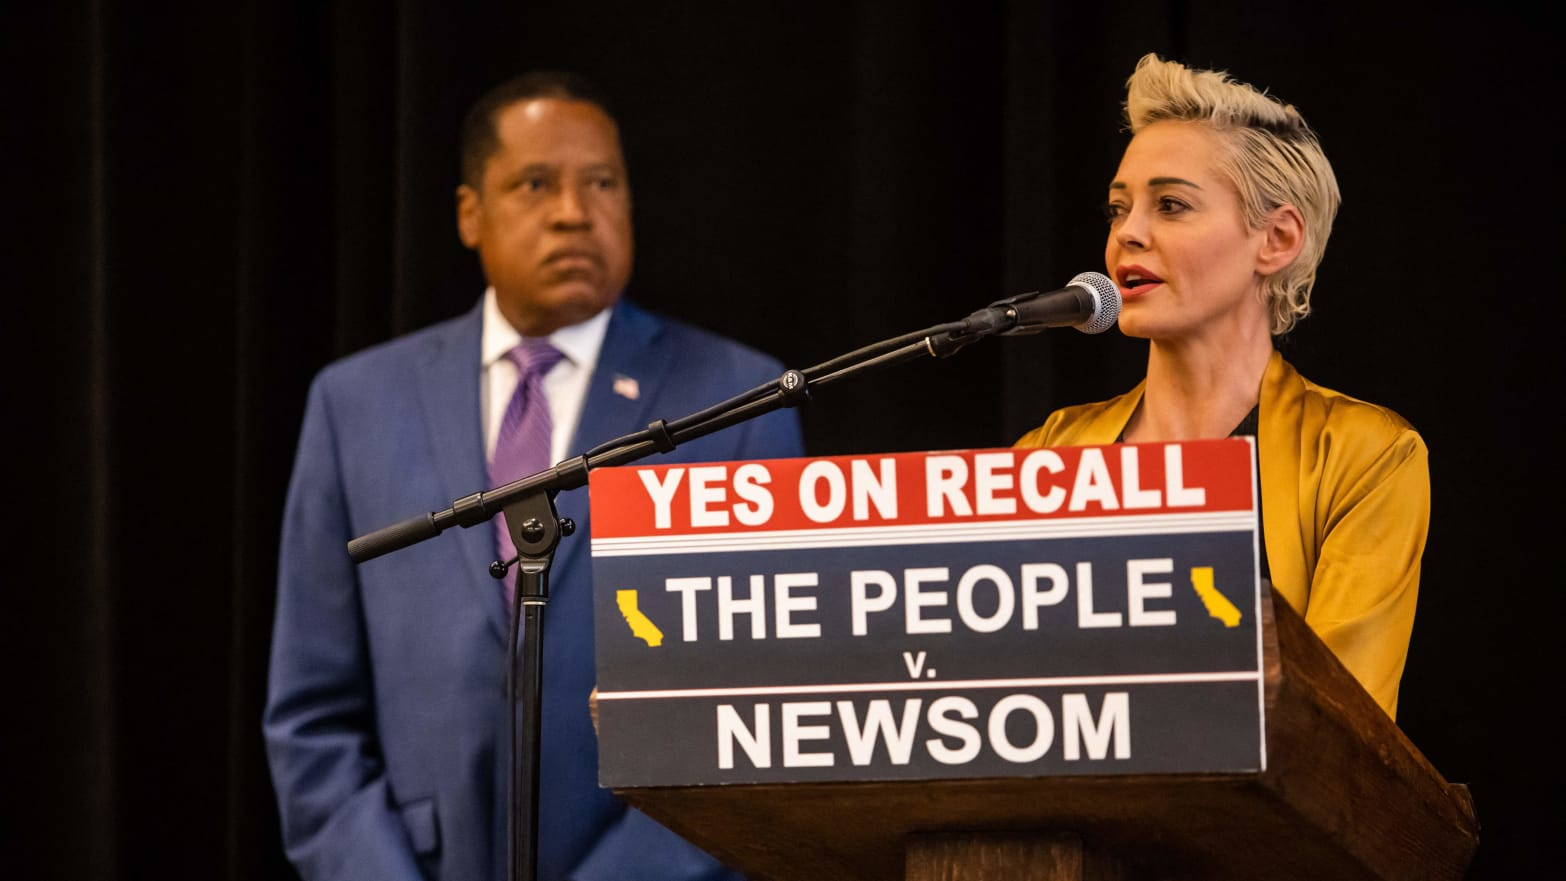 Rose McGowan Says She Is No Longer Democrat, Asks Voters To 'Put A Stake In The Heart of Evil' At Larry Elder Event